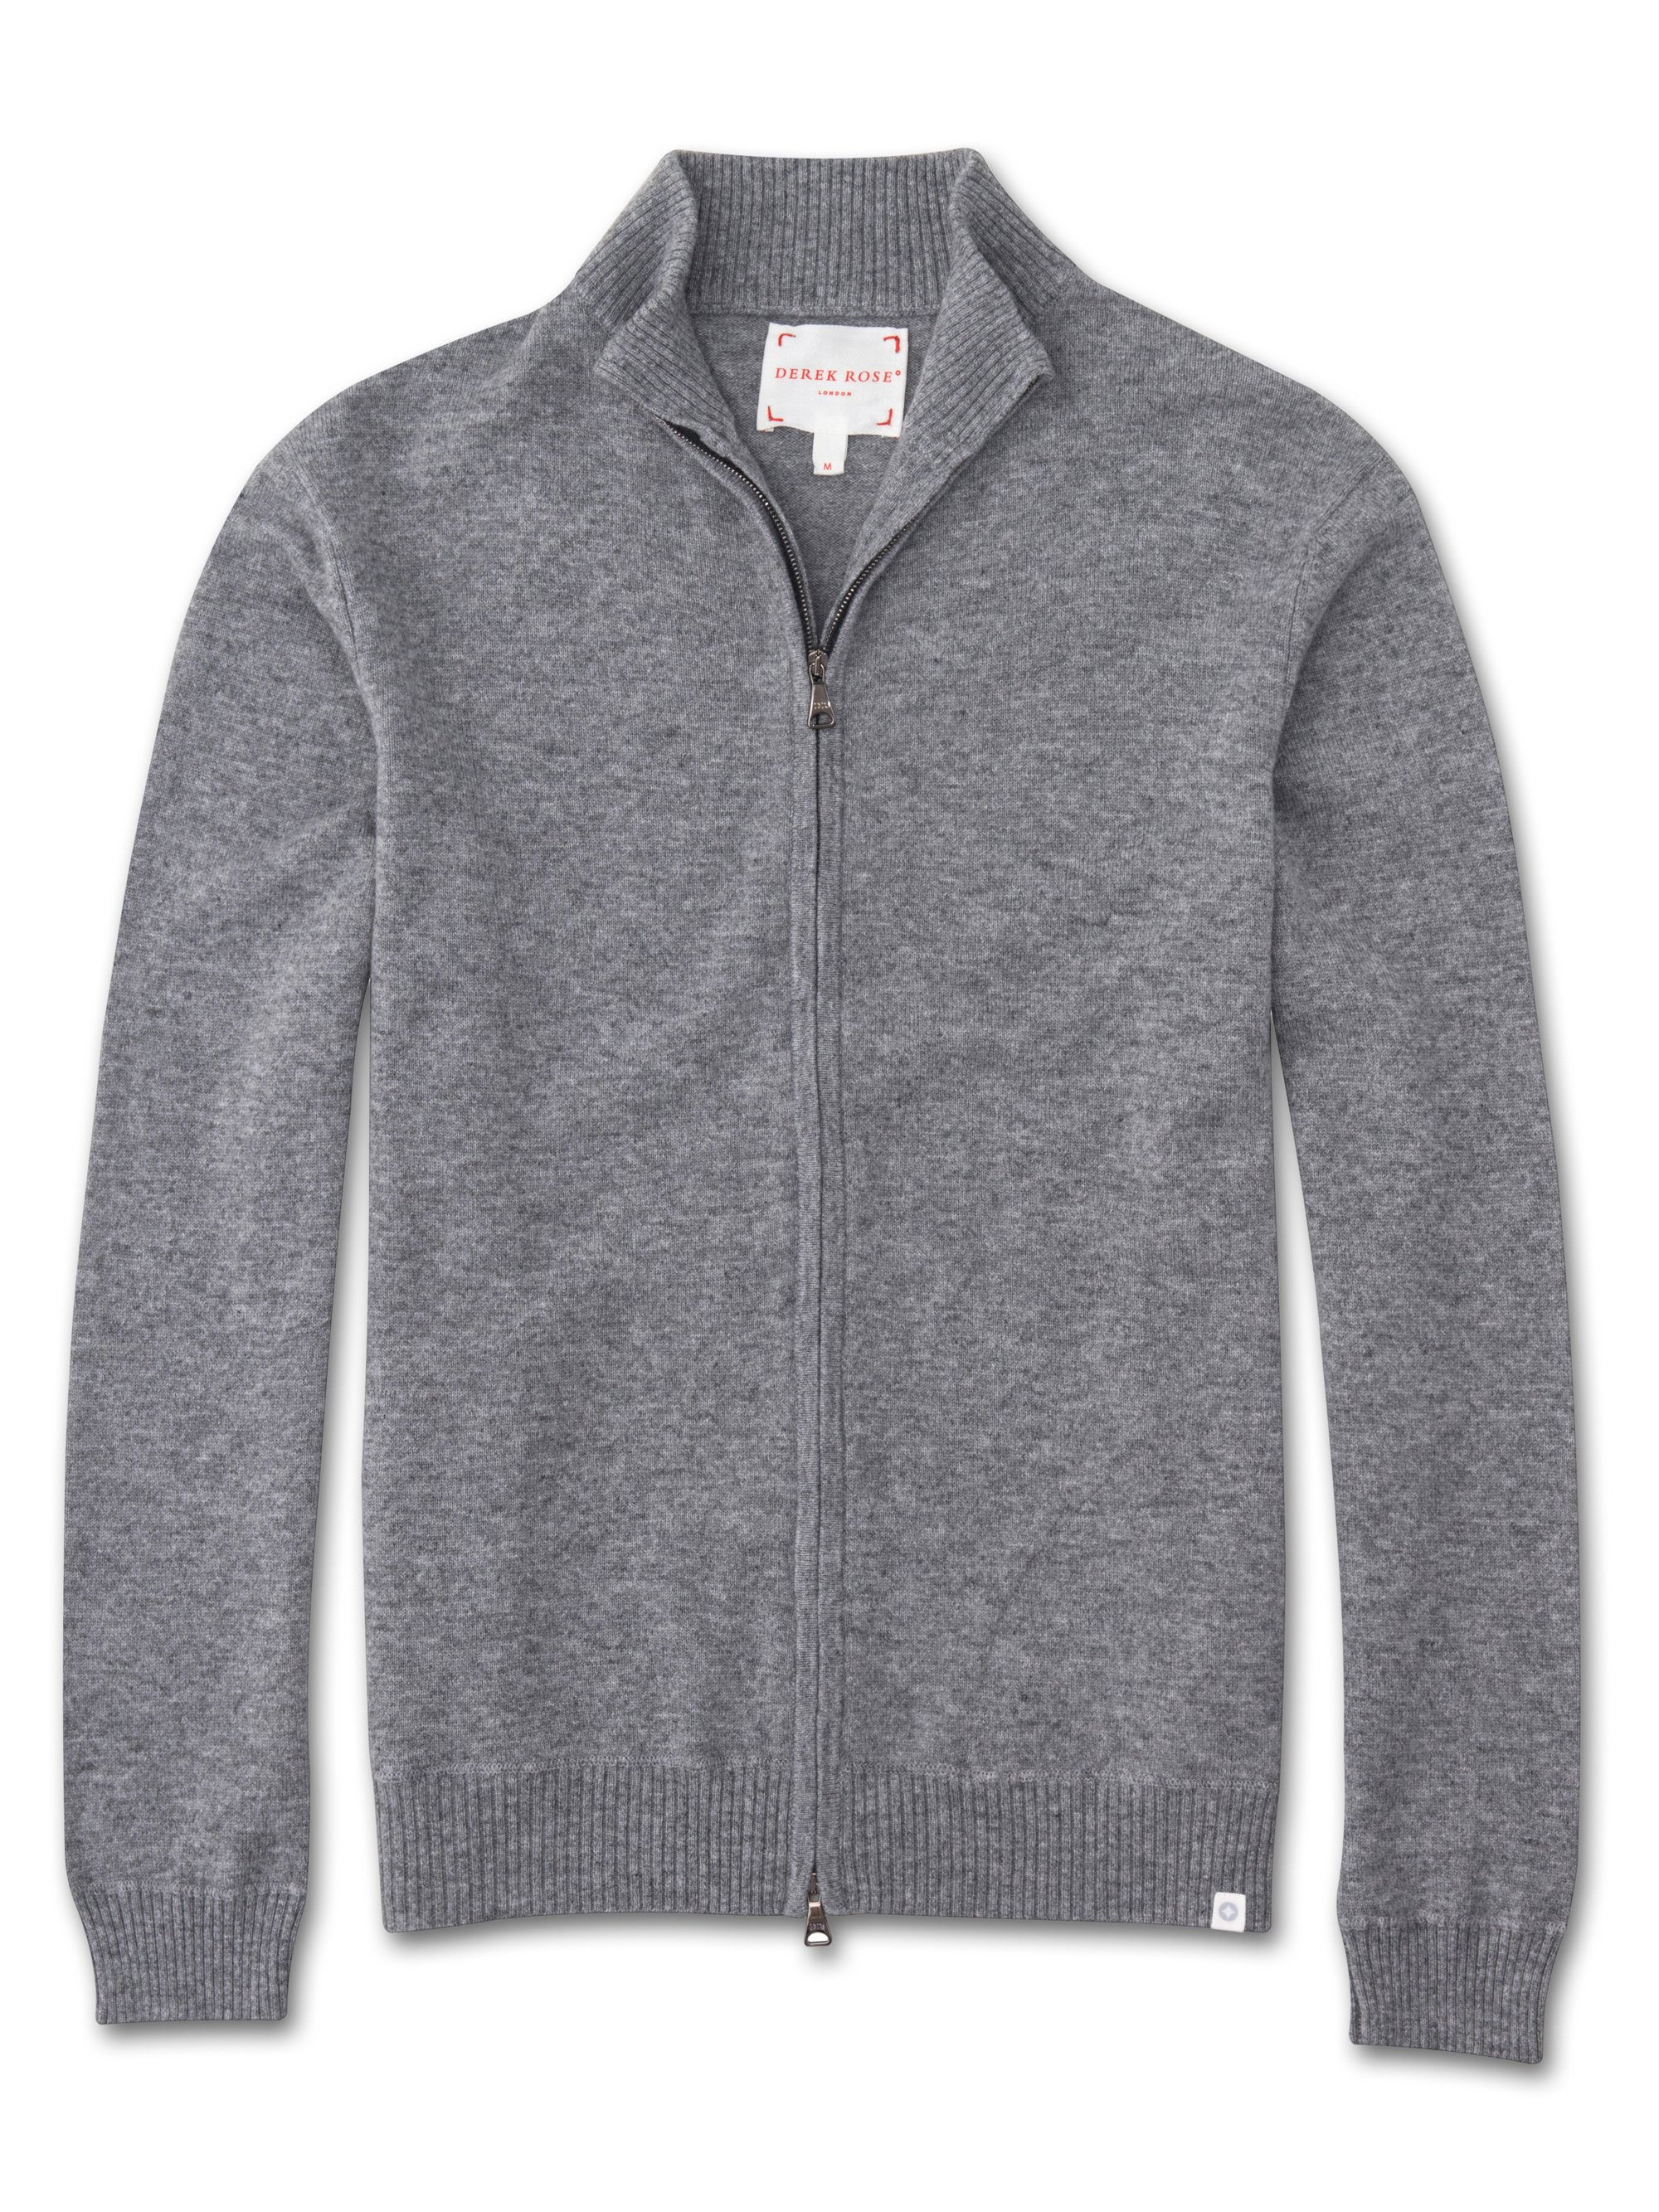 Men's Cashmere Zip-Up Top Finley Pure Cashmere Silver